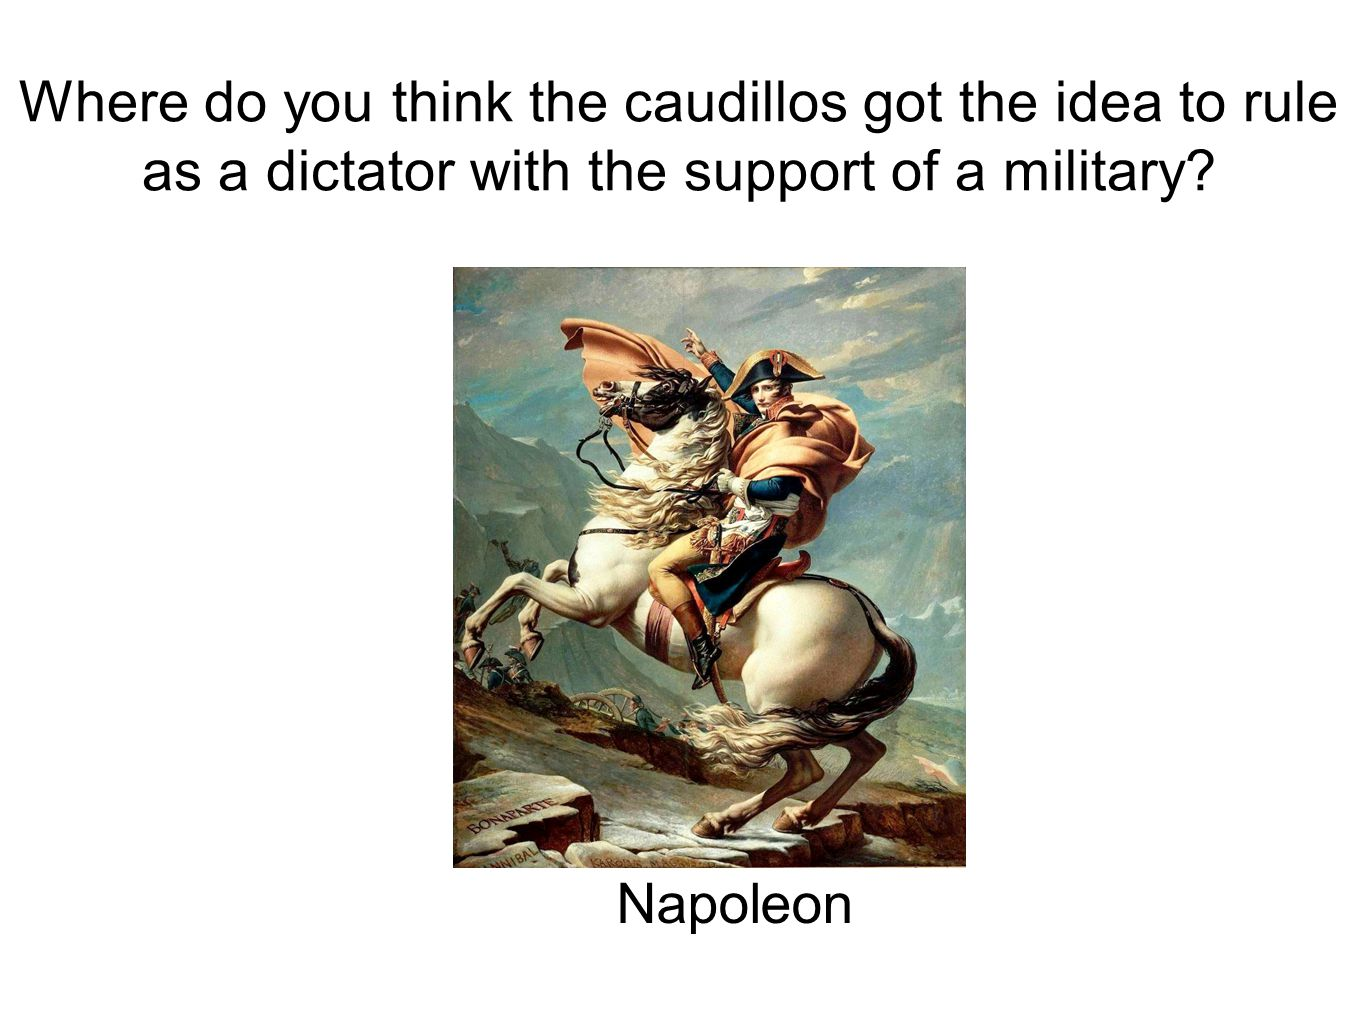 Where do you think the caudillos got the idea to rule as a dictator with the support of a military